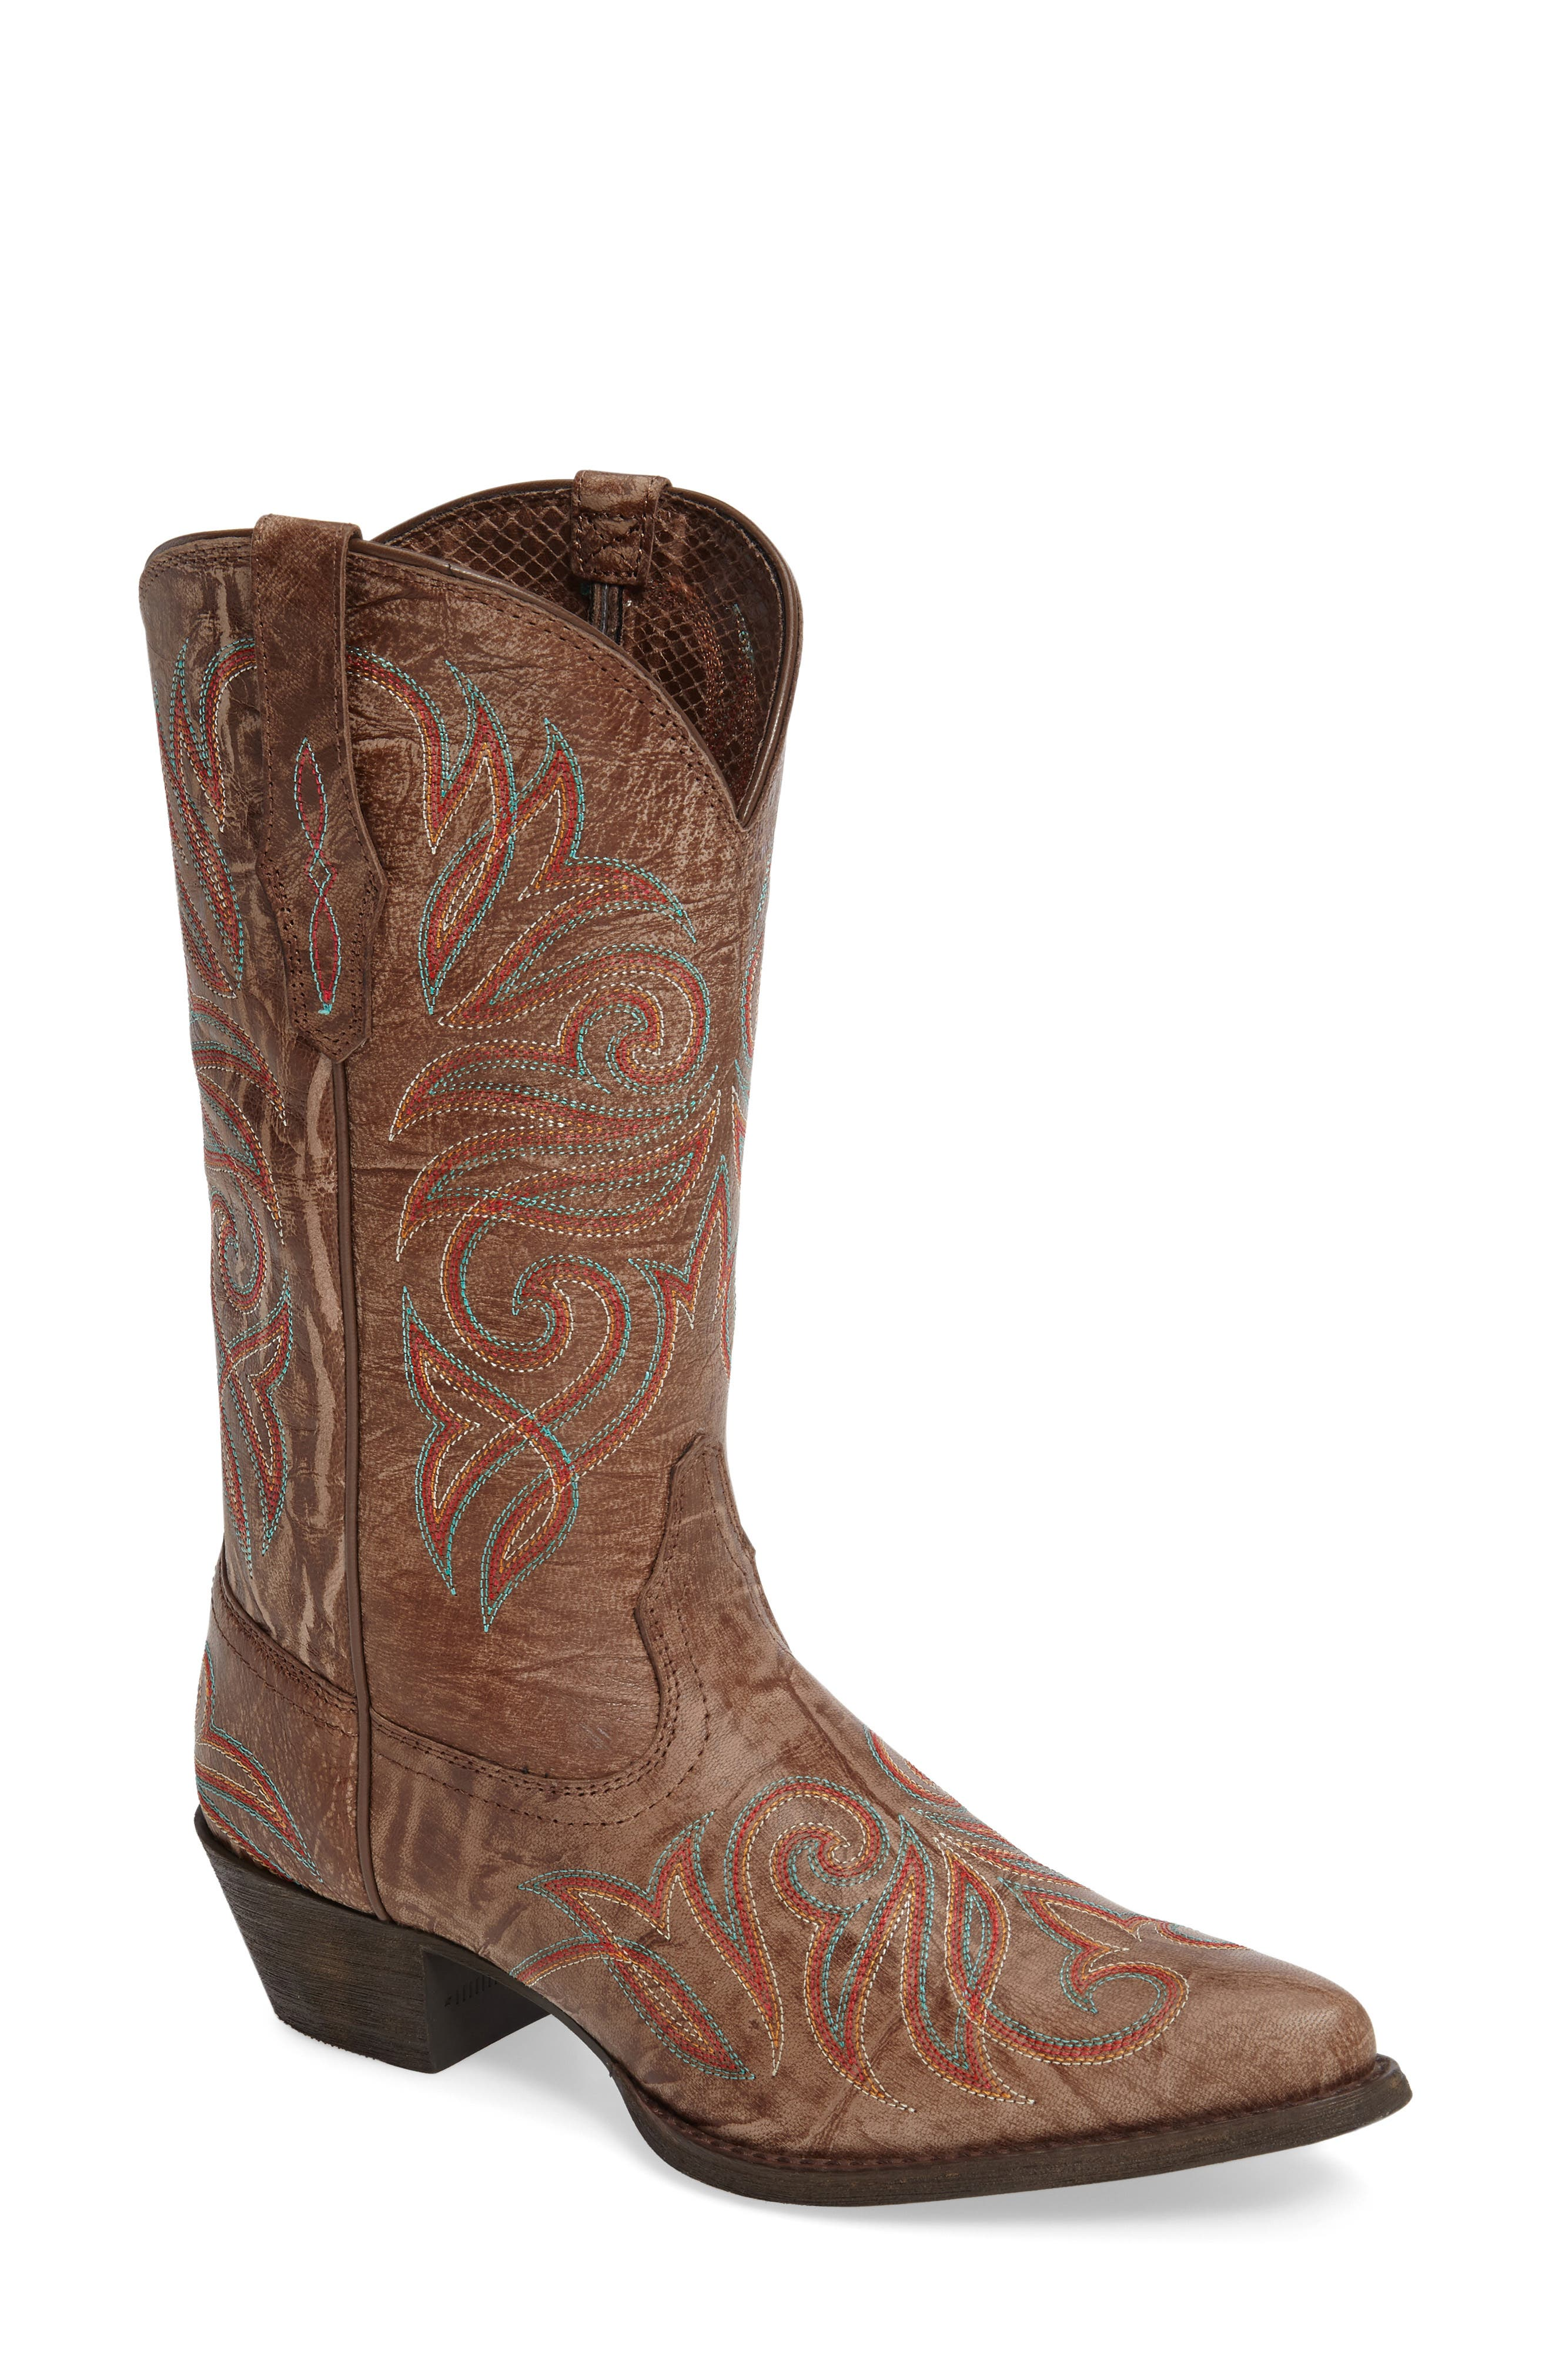 Alternate Image 1 Selected - Ariat Round Up J-Toe Western Boot (Women)